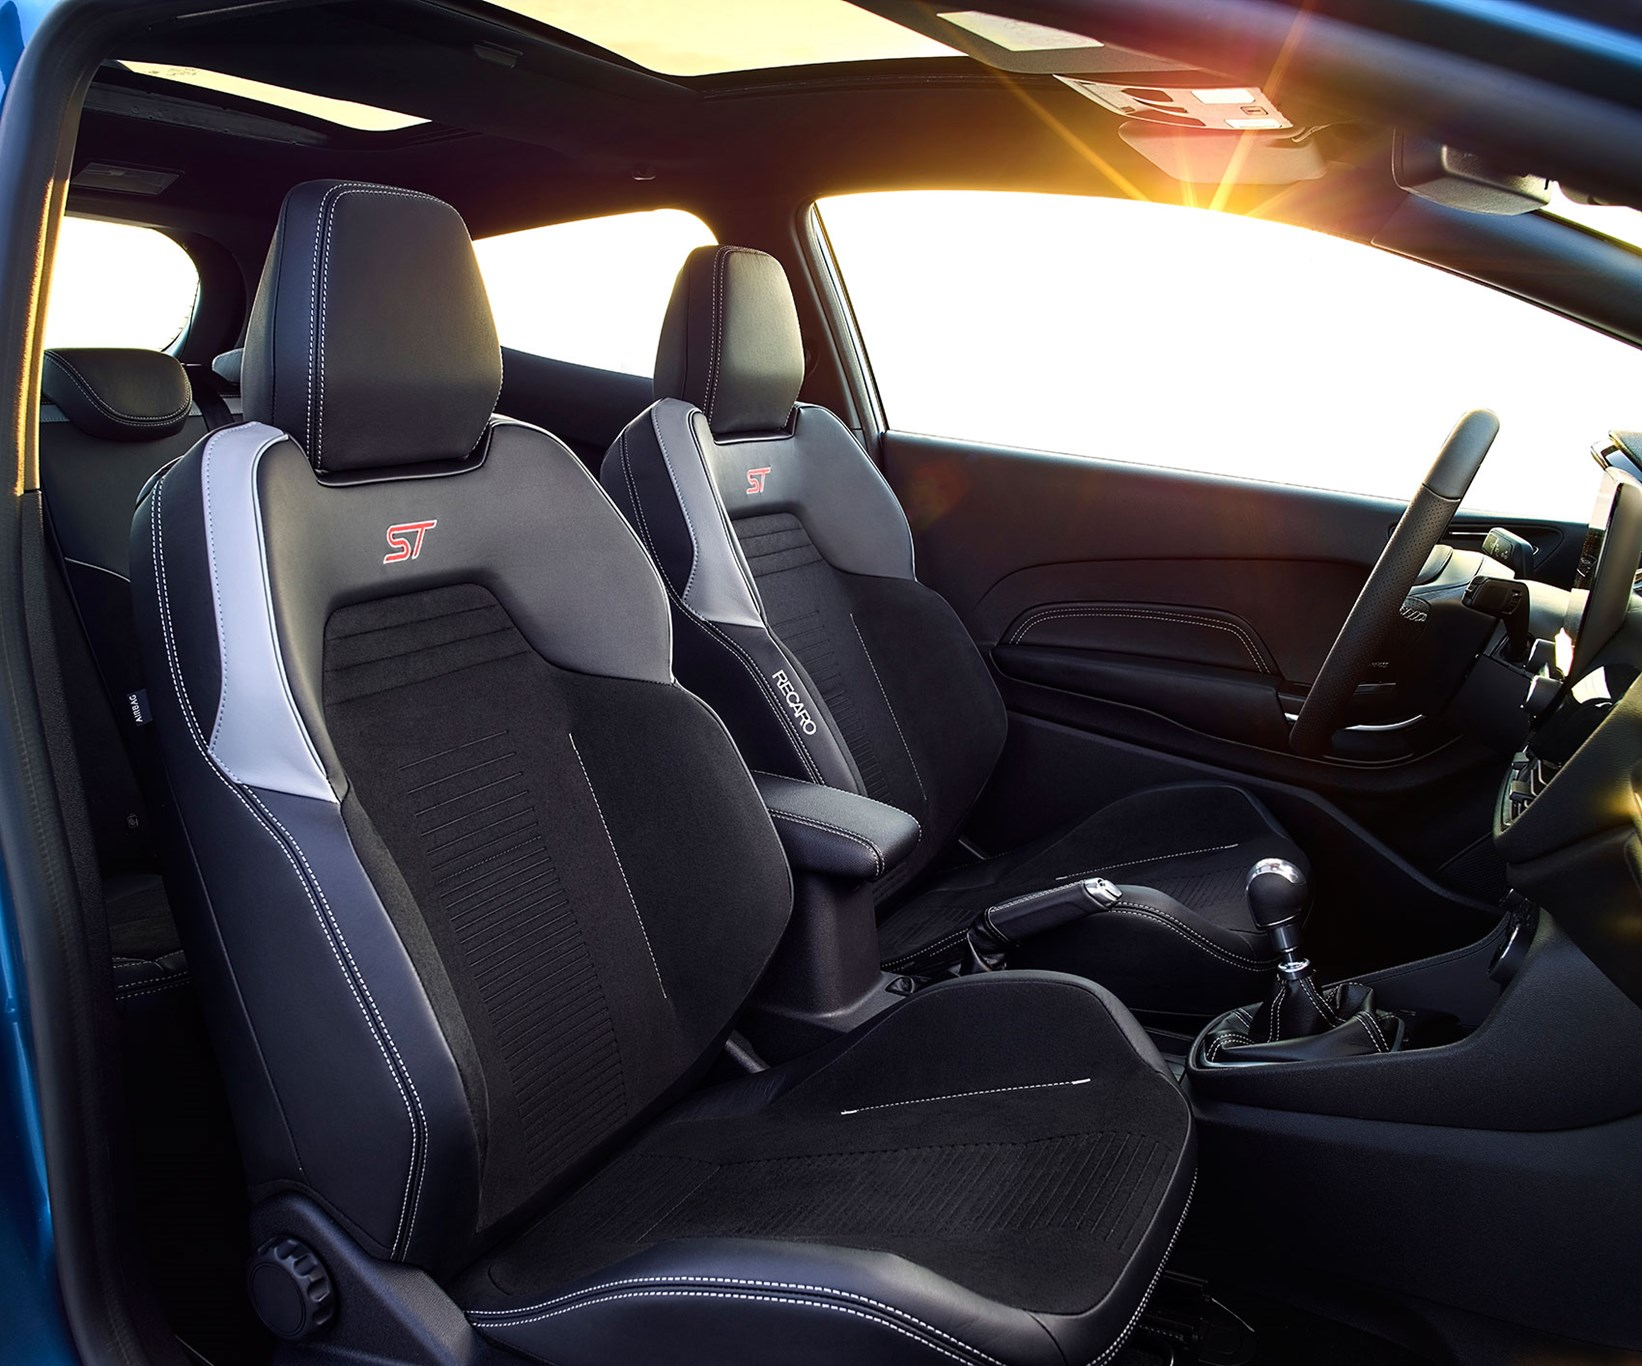 ... Recaro bucket seats to keep passengers upright ... & New Ford Fiesta ST 2017: news specs and photos by CAR Magazine markmcfarlin.com